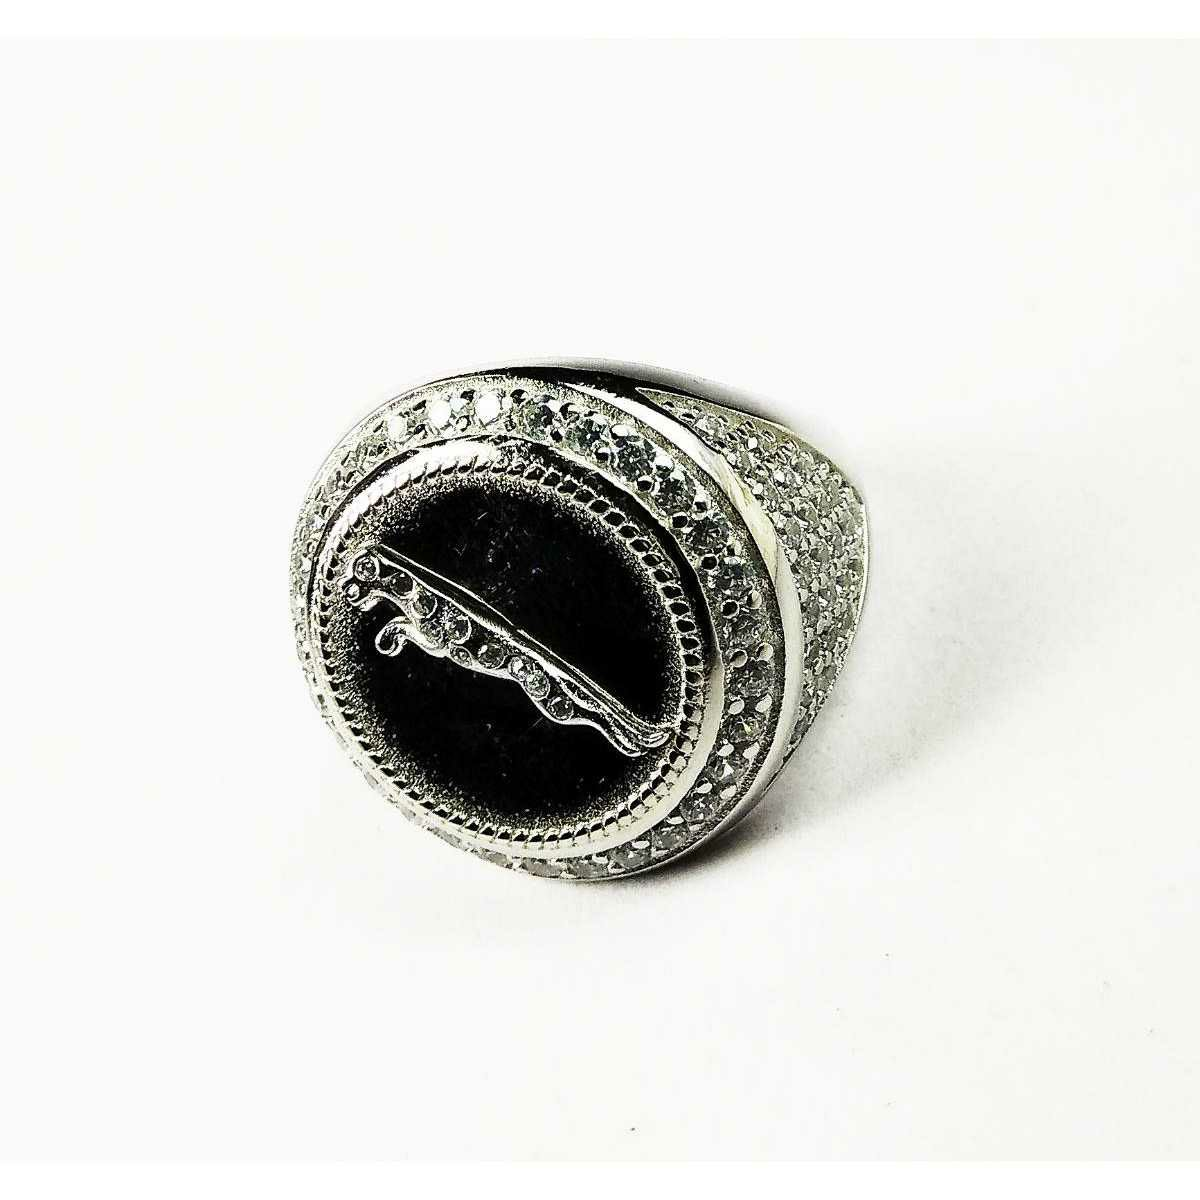 Descent 925 Silver Jaguar Gents Ring